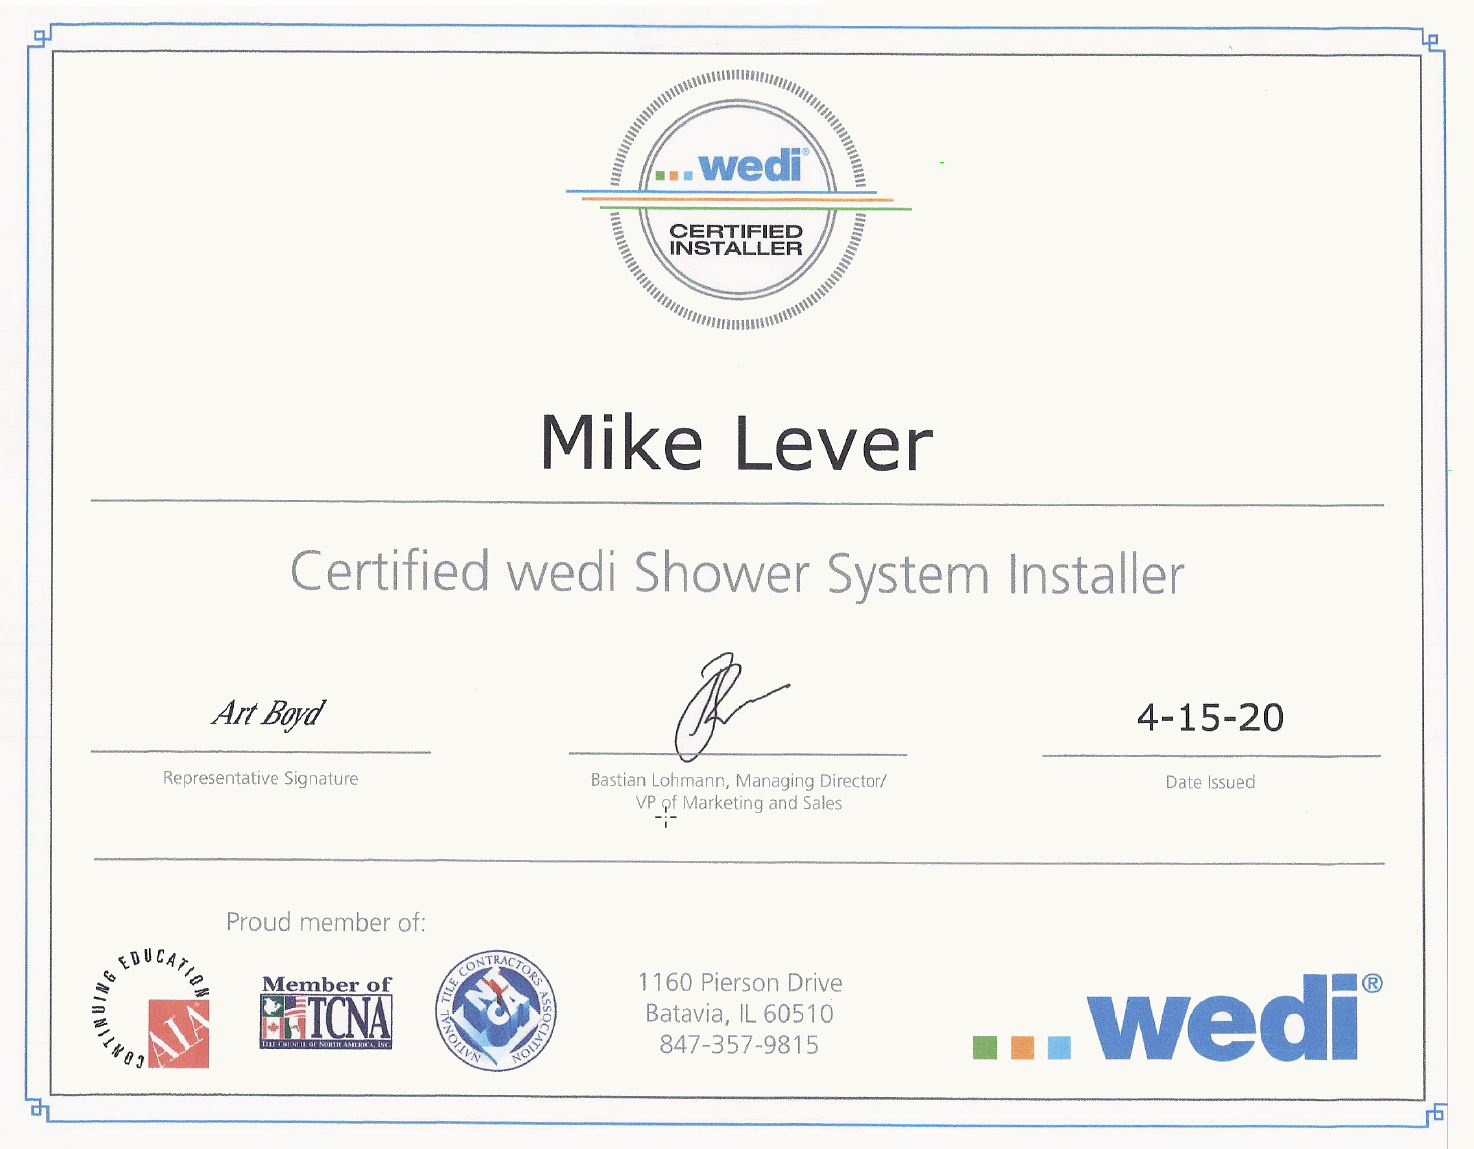 Certified wedi Shower System Installer